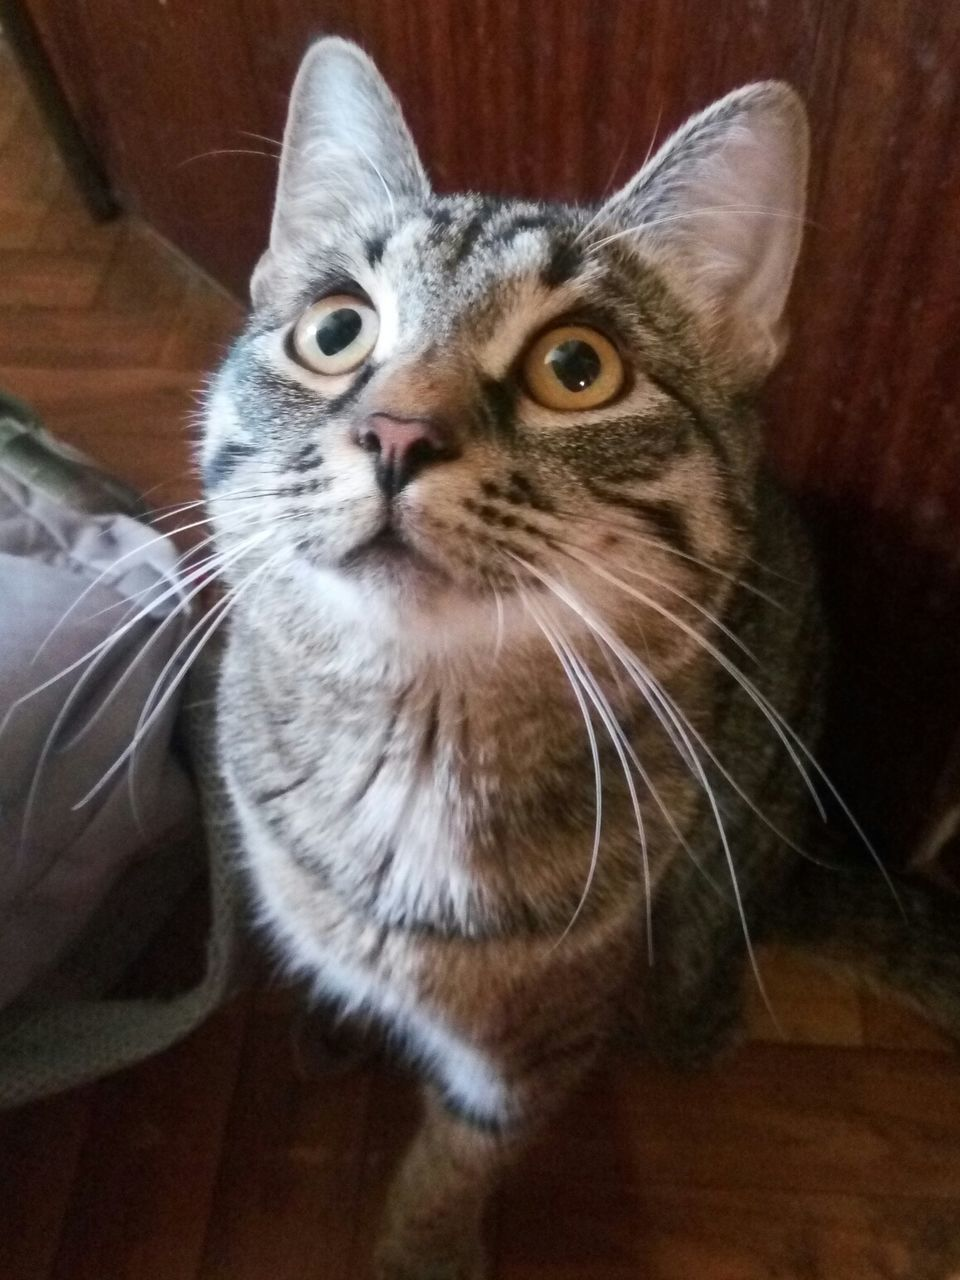 domestic cat, one animal, pets, animal themes, domestic animals, whisker, indoors, mammal, feline, looking at camera, no people, home interior, portrait, sitting, close-up, day